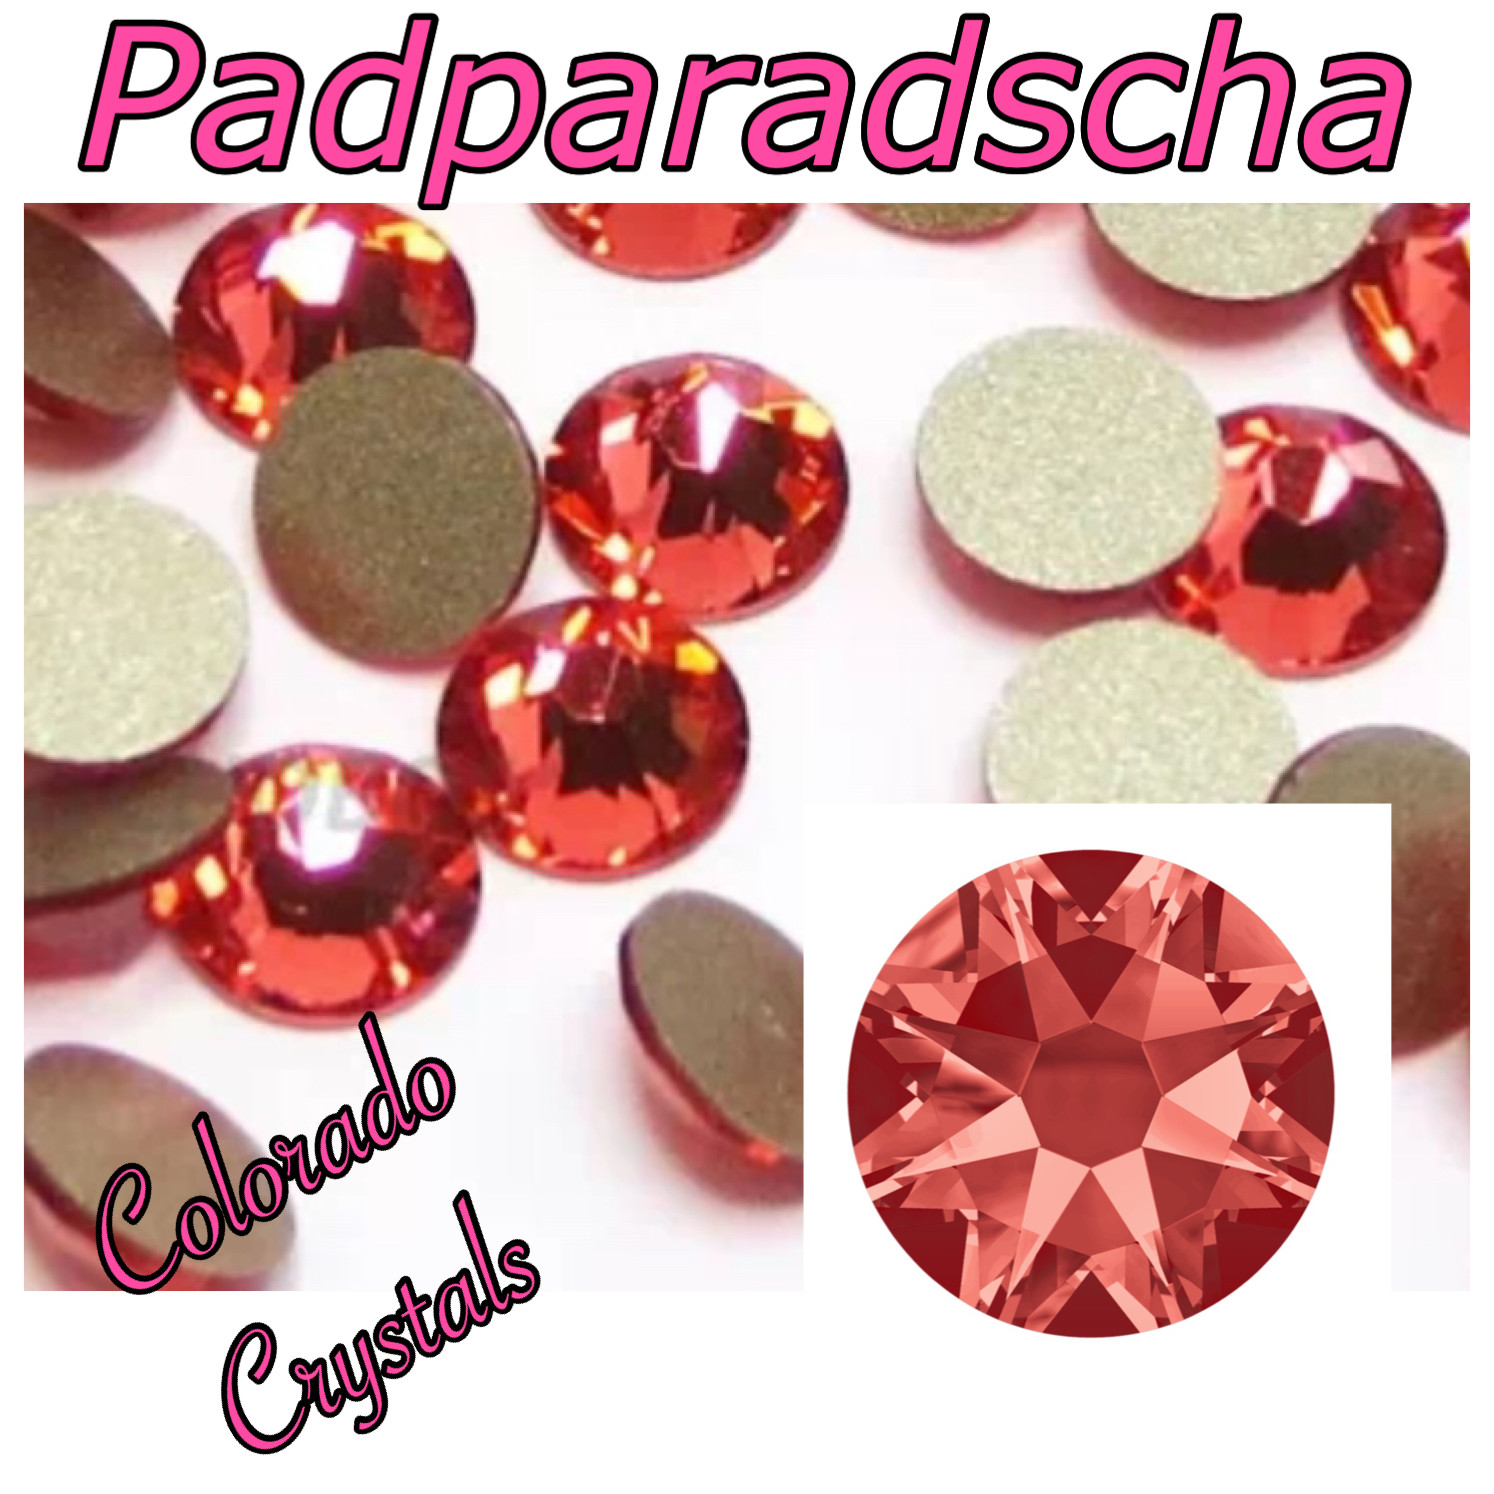 Padparadscha 20ss 2088 Limited Swarovski Coral colored crystals